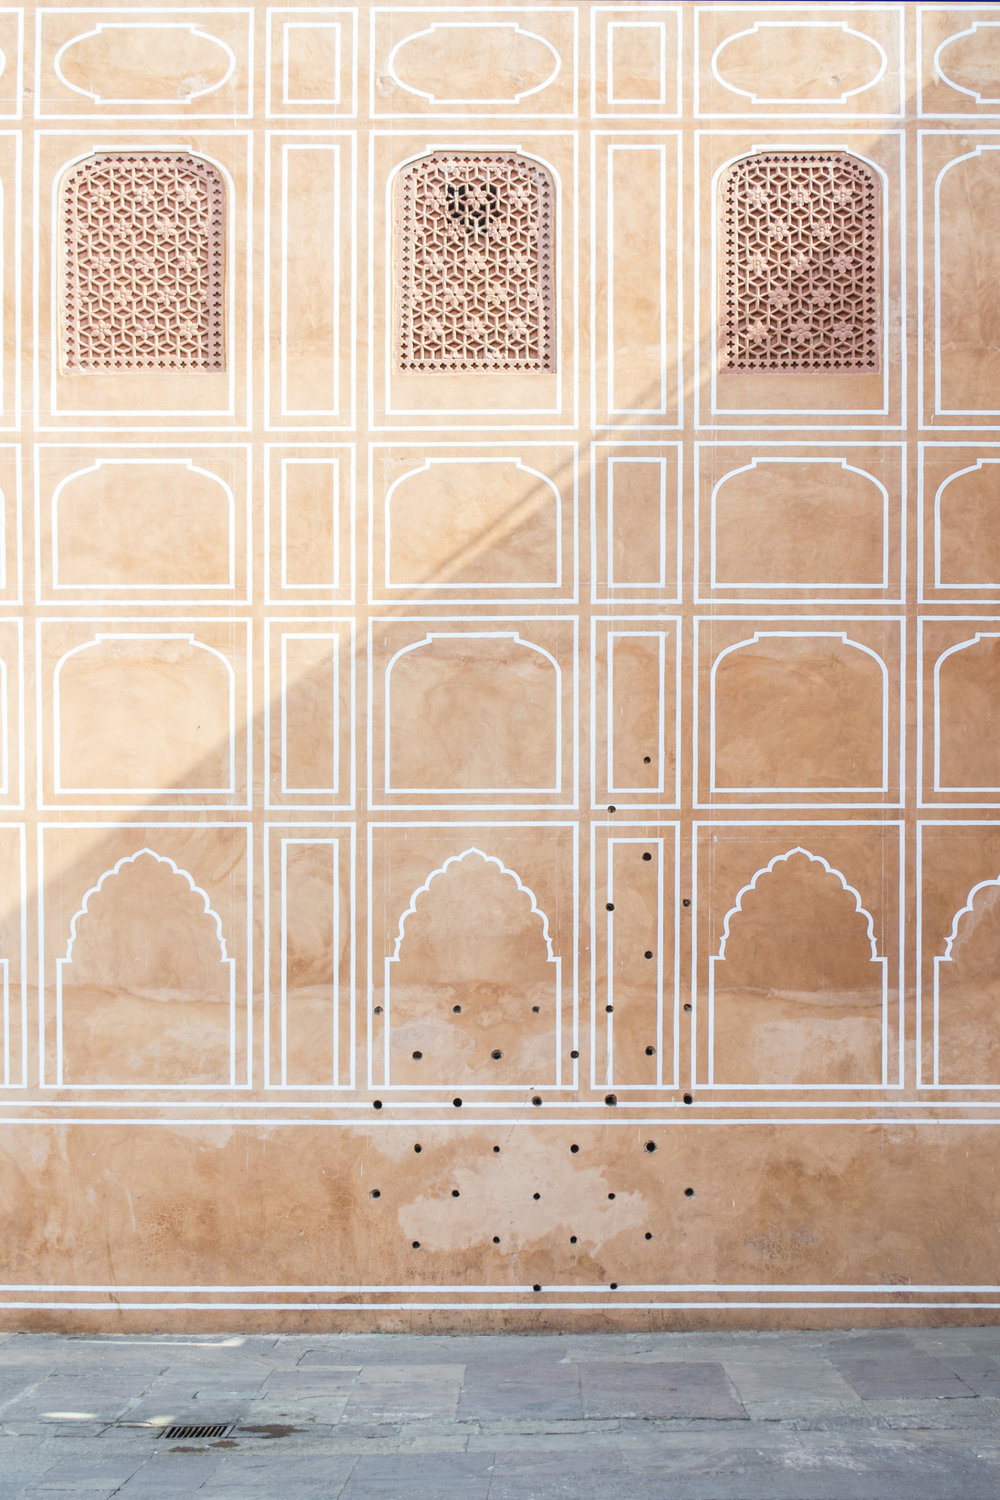 A wall inside Jaipur City Palace.